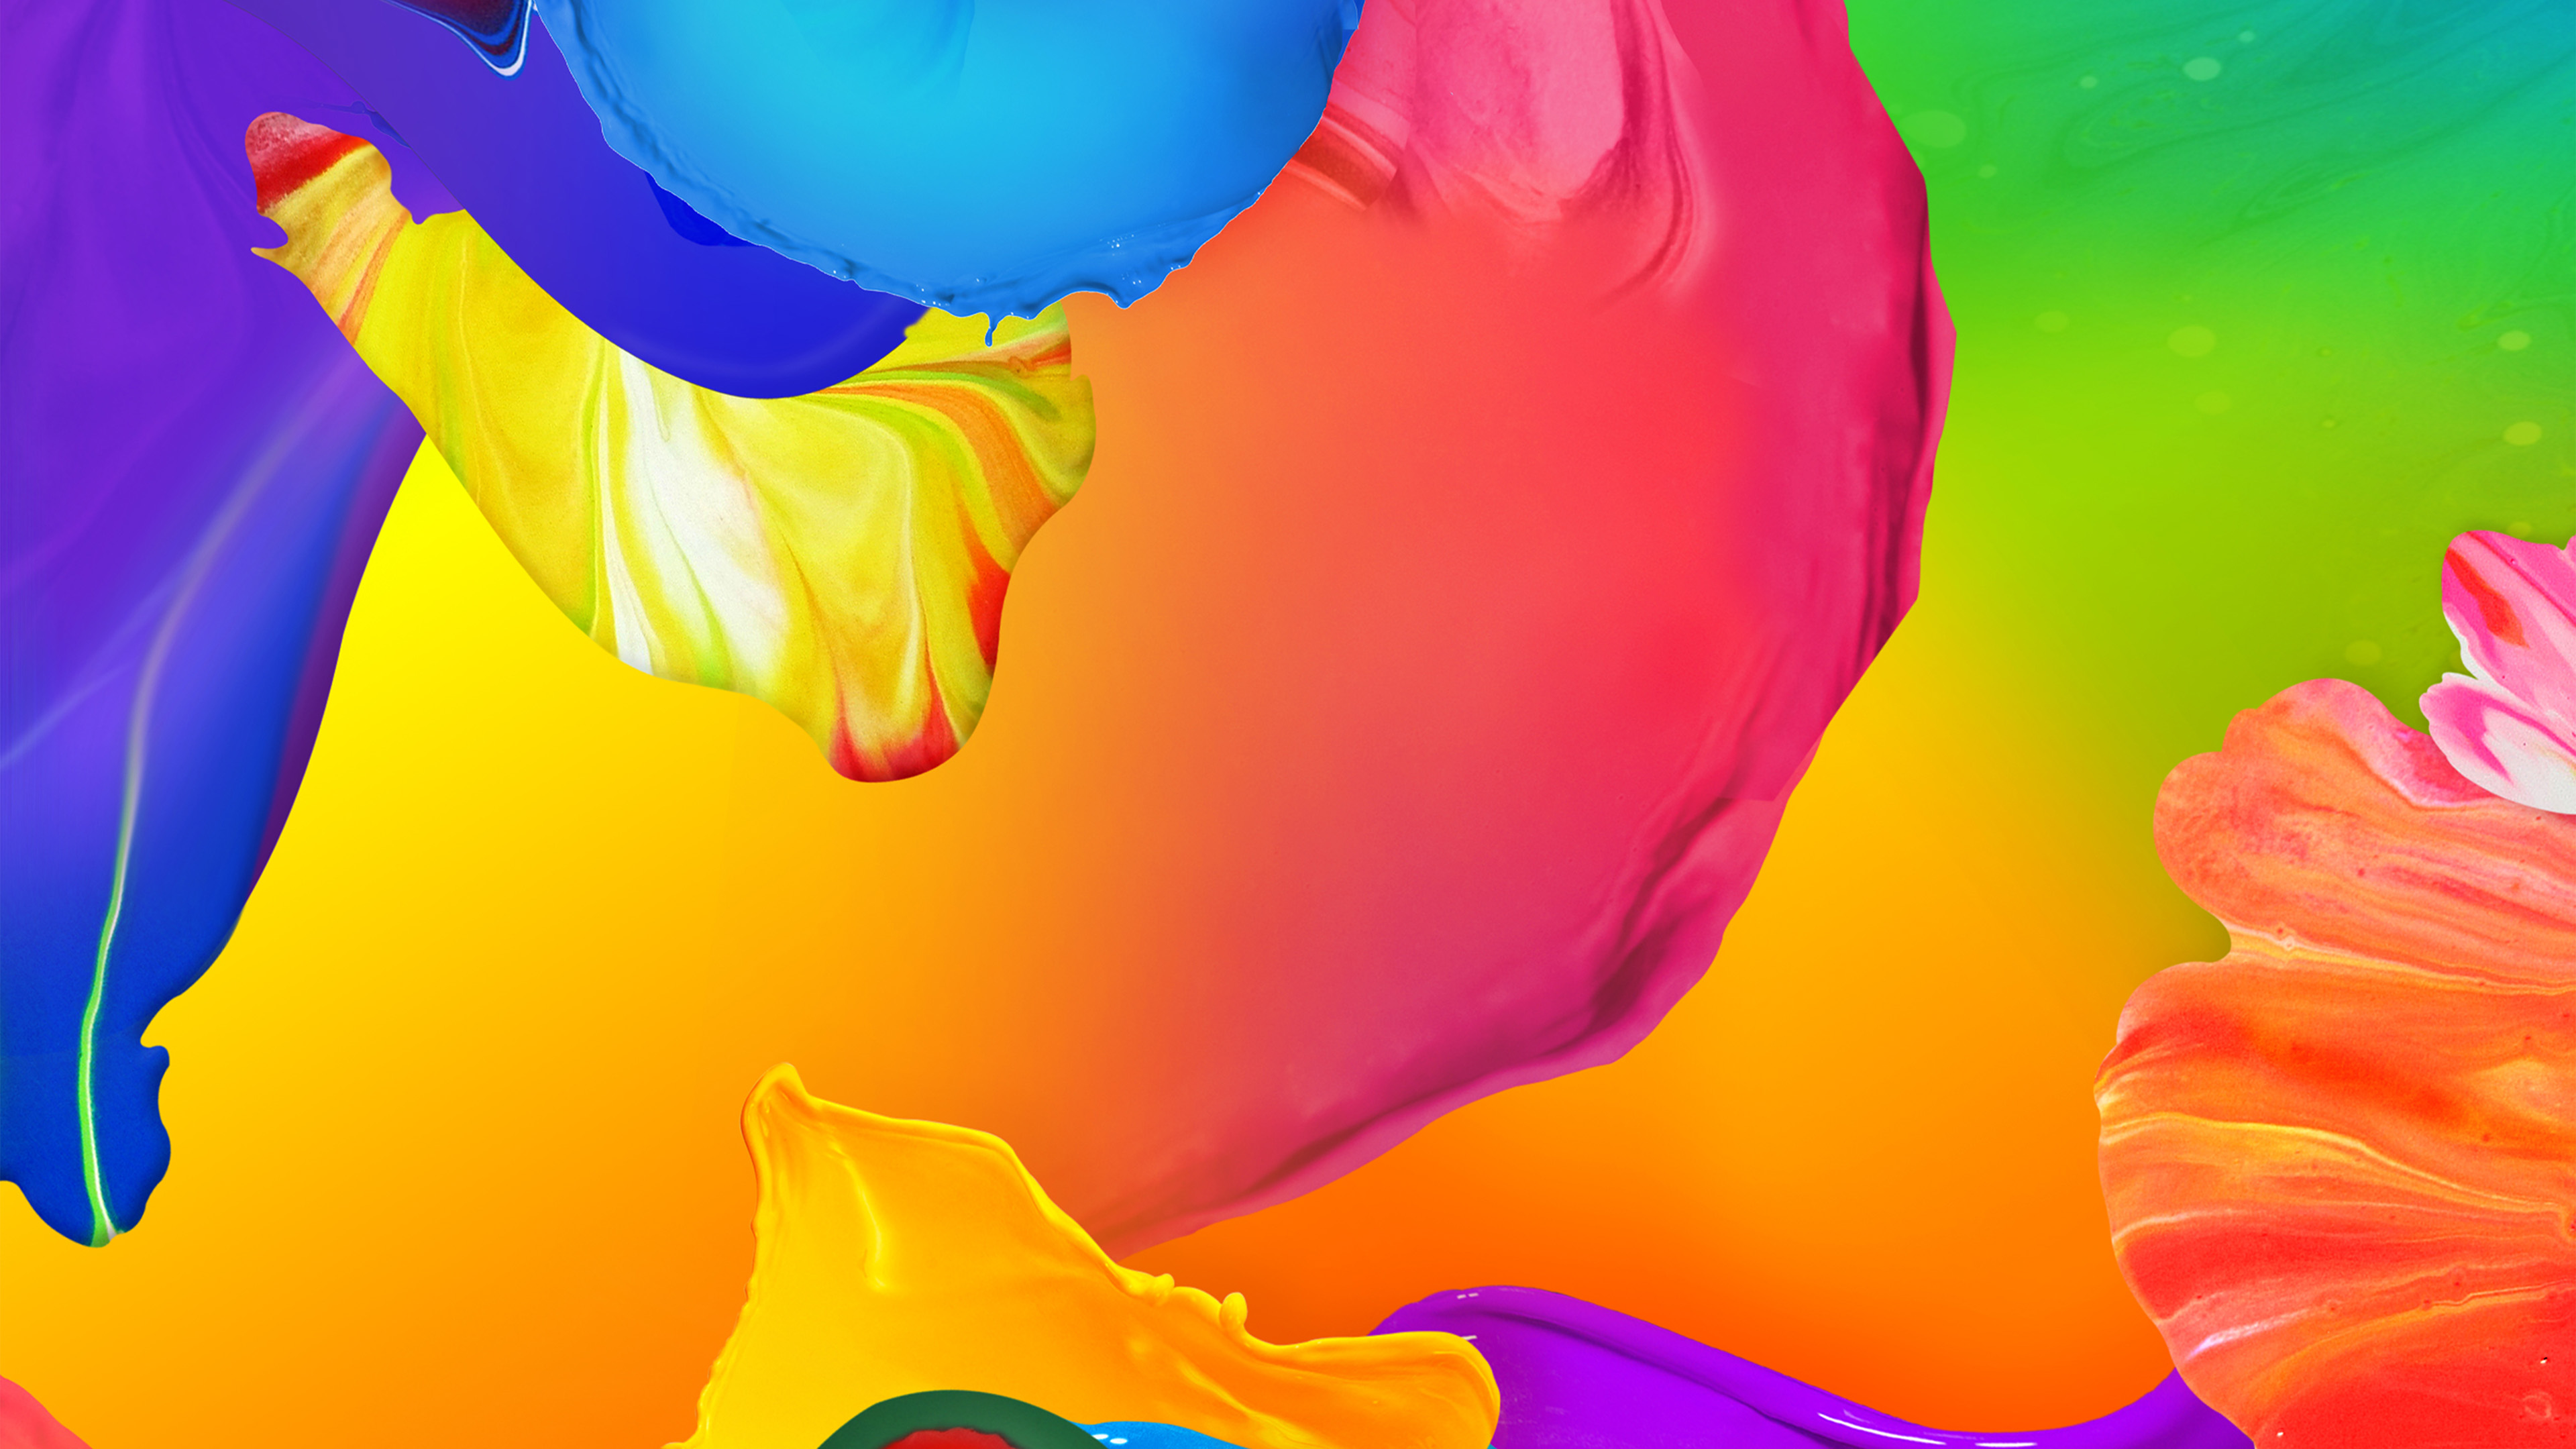 Abstract Water Painting Colors Samsung Galaxy S5 Hd: 3840 X 2400